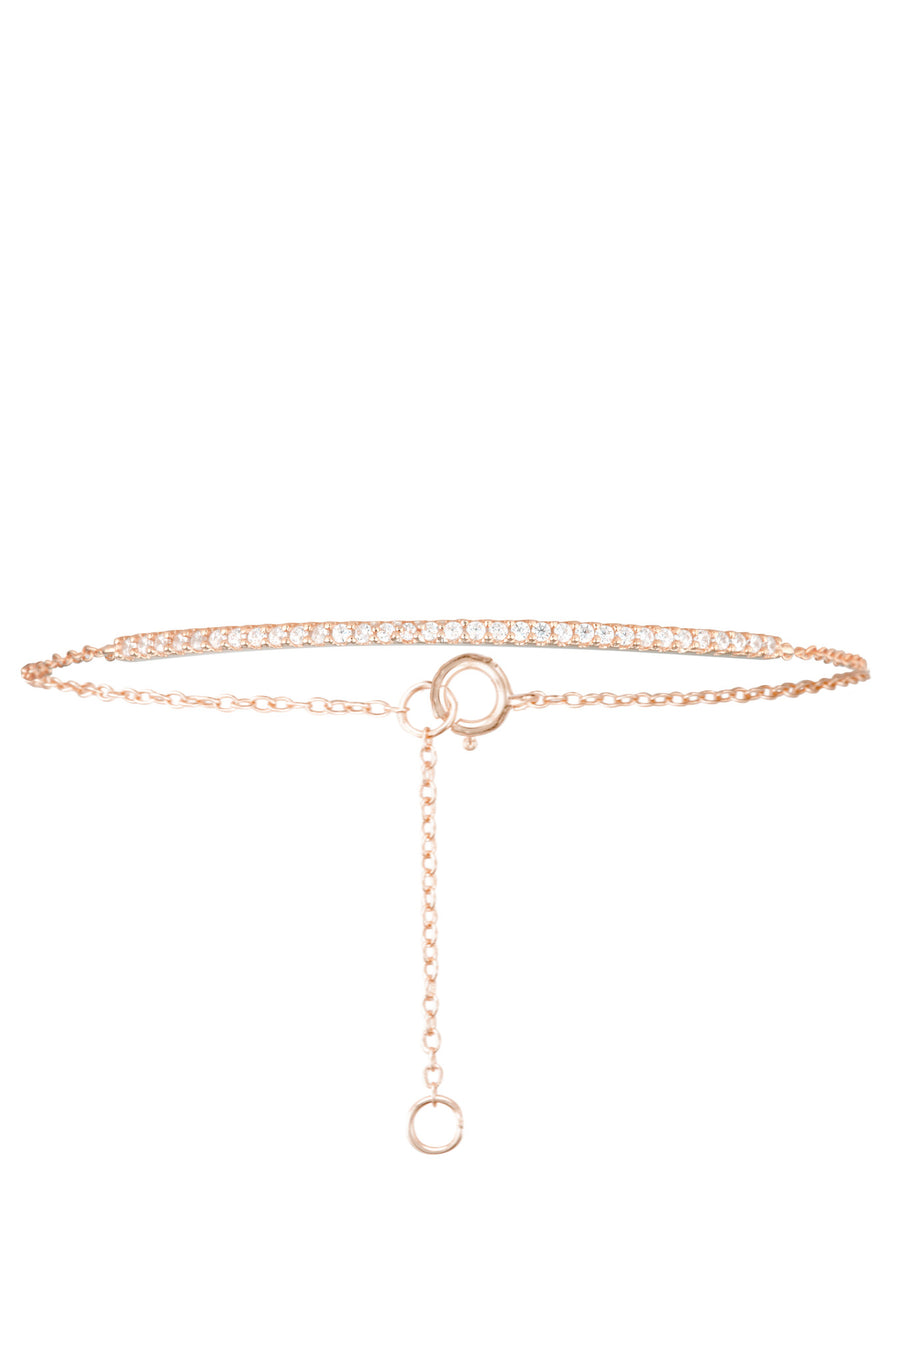 Layla Bracelet in Rose Gold - HER Empire Fashion Boutique Terrigal & Online